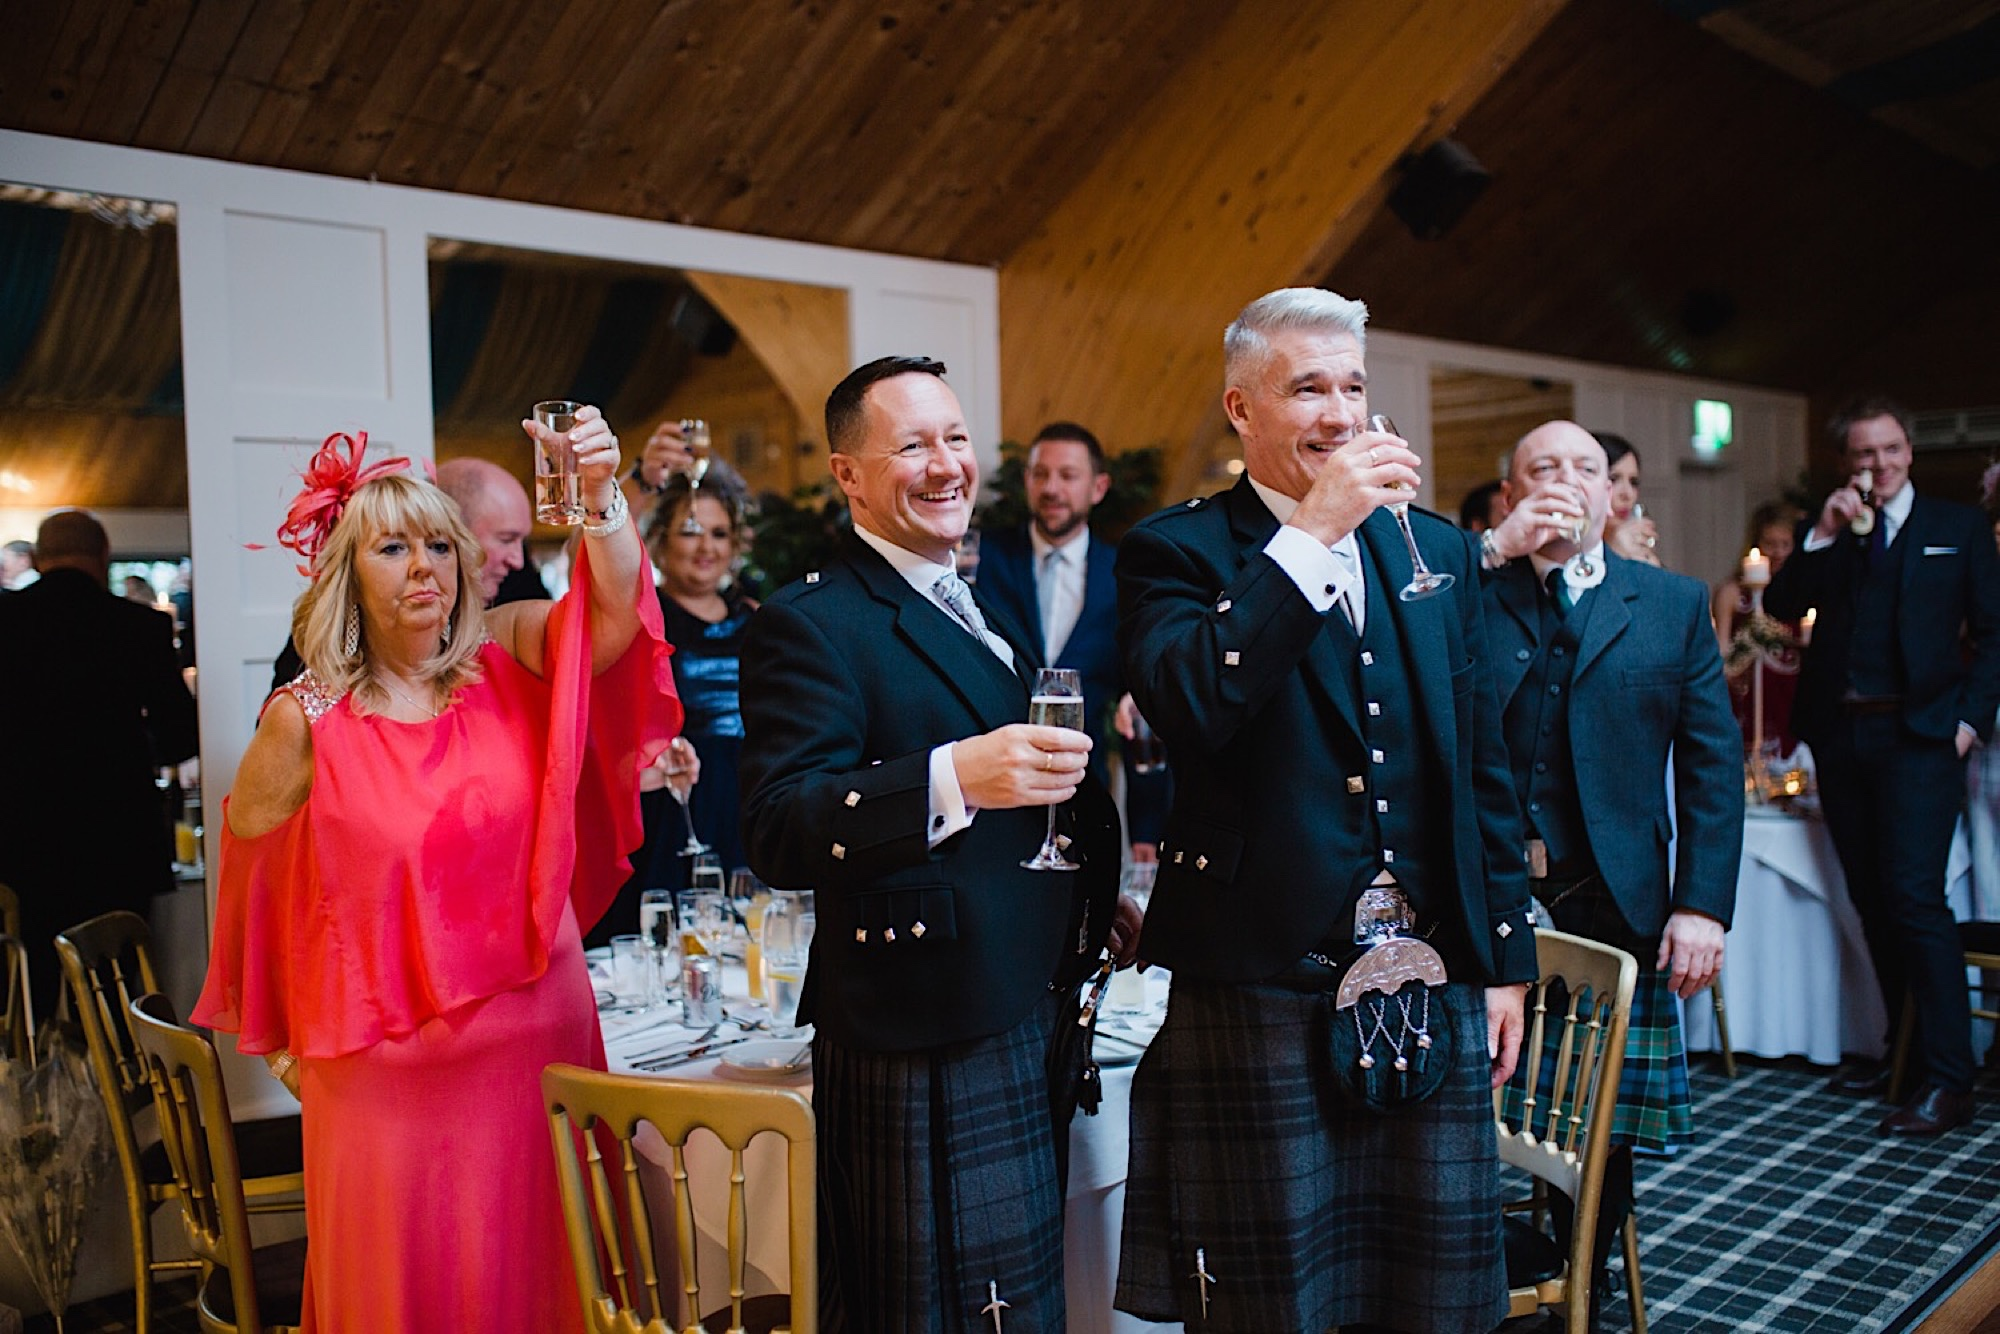 guests toasting the bride and groom